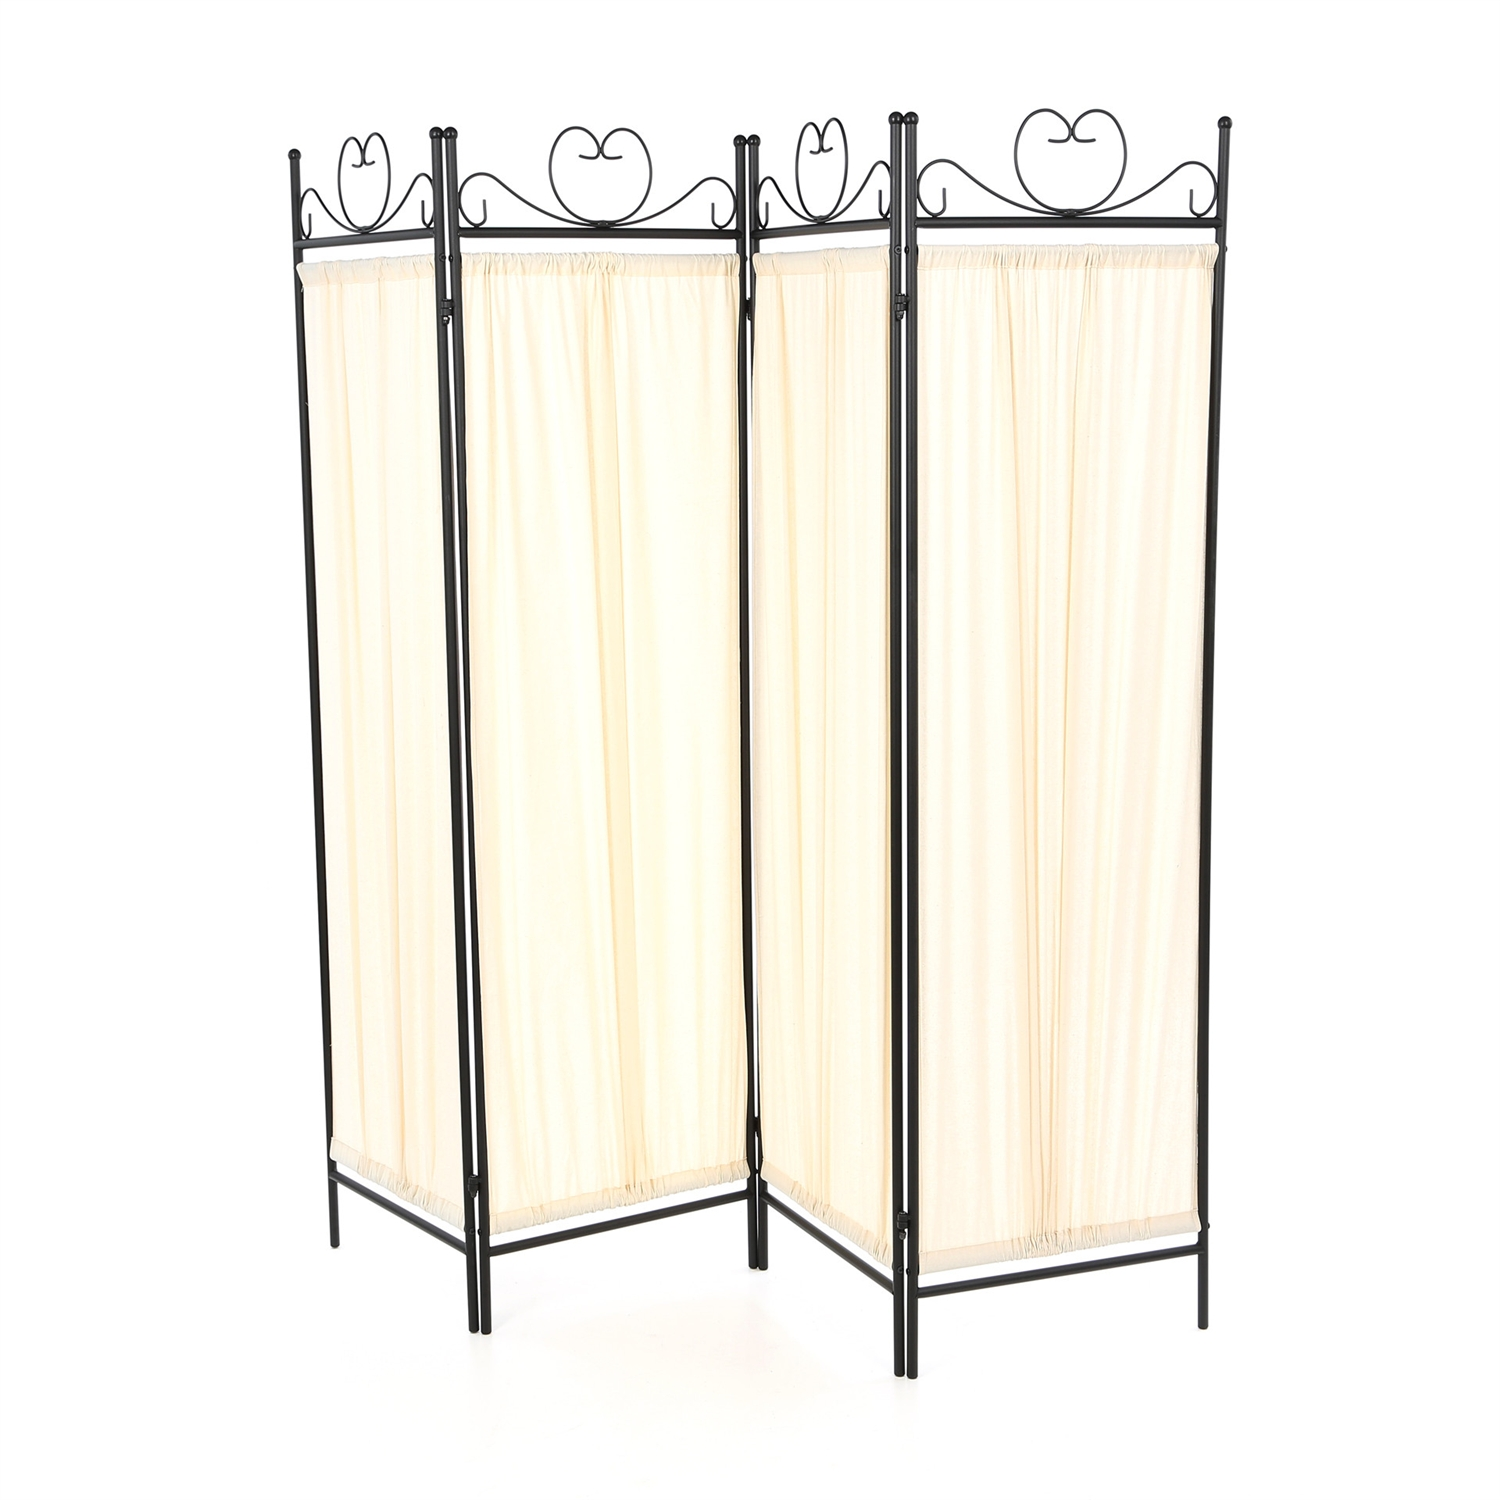 Black Metal 4 Panel Room Divider with Off White Fabric Screen